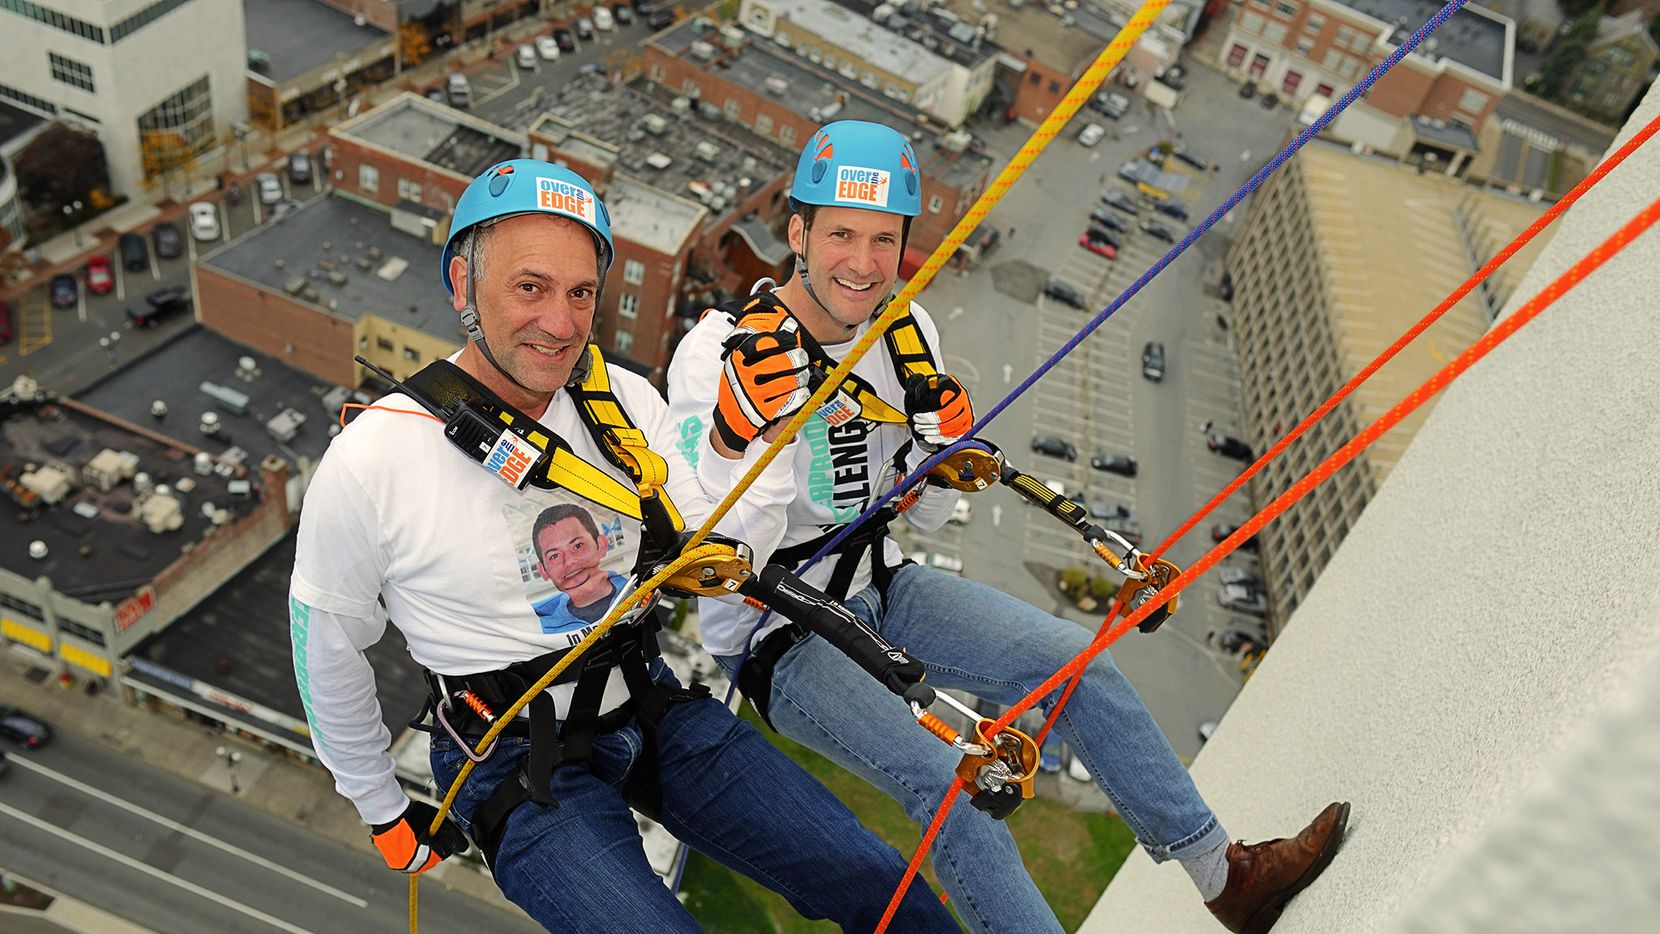 Shatterproof founder and CEO Gary Mendell rappels with Congressman Jim Himes.